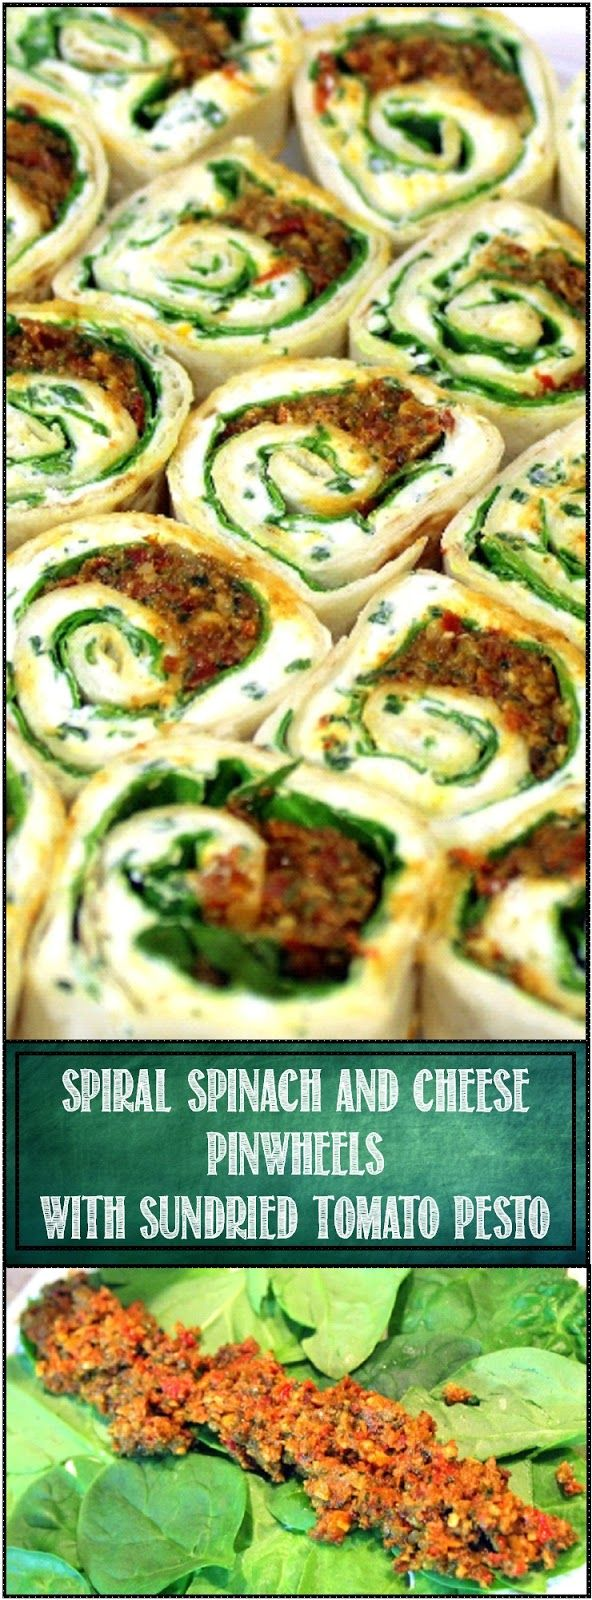 Spiral Spinach and Cheese Bites with Sun Dried Tomato Pesto VERY VERY EASY... Burrito size Tortilla, a Fresh Made Herbed Cream Cheese (with a secret ingredient that makes it smooth and spreadable), A PUNCH of flavor from a Fresh made (or use a jar) Sun Dried Tomato Pesto plus the colorful greens of Spinach combine for a quick easy Appetizer (and inexpensive if you are making dozens)!  Spiral Spinach and Cheese Bites... YUM!